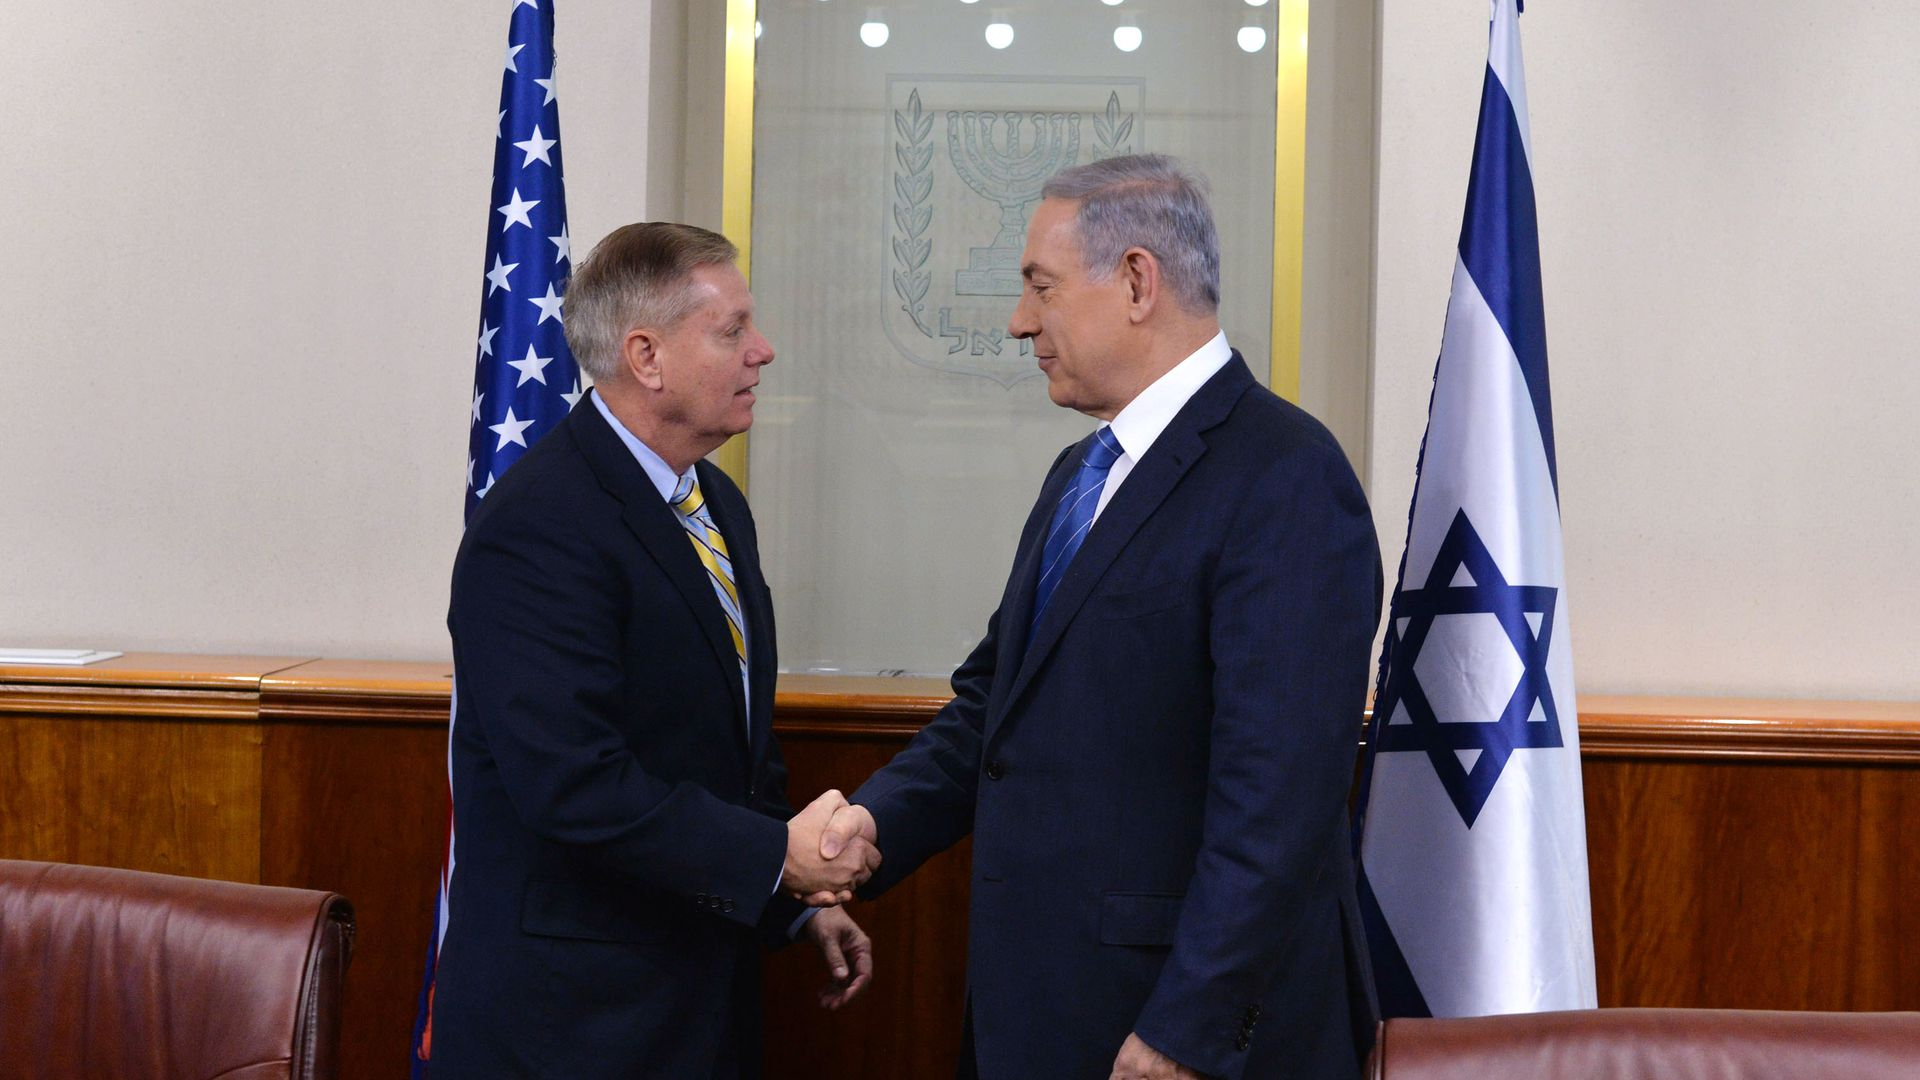 Israel is working to stop Senate resolution on two-state solution